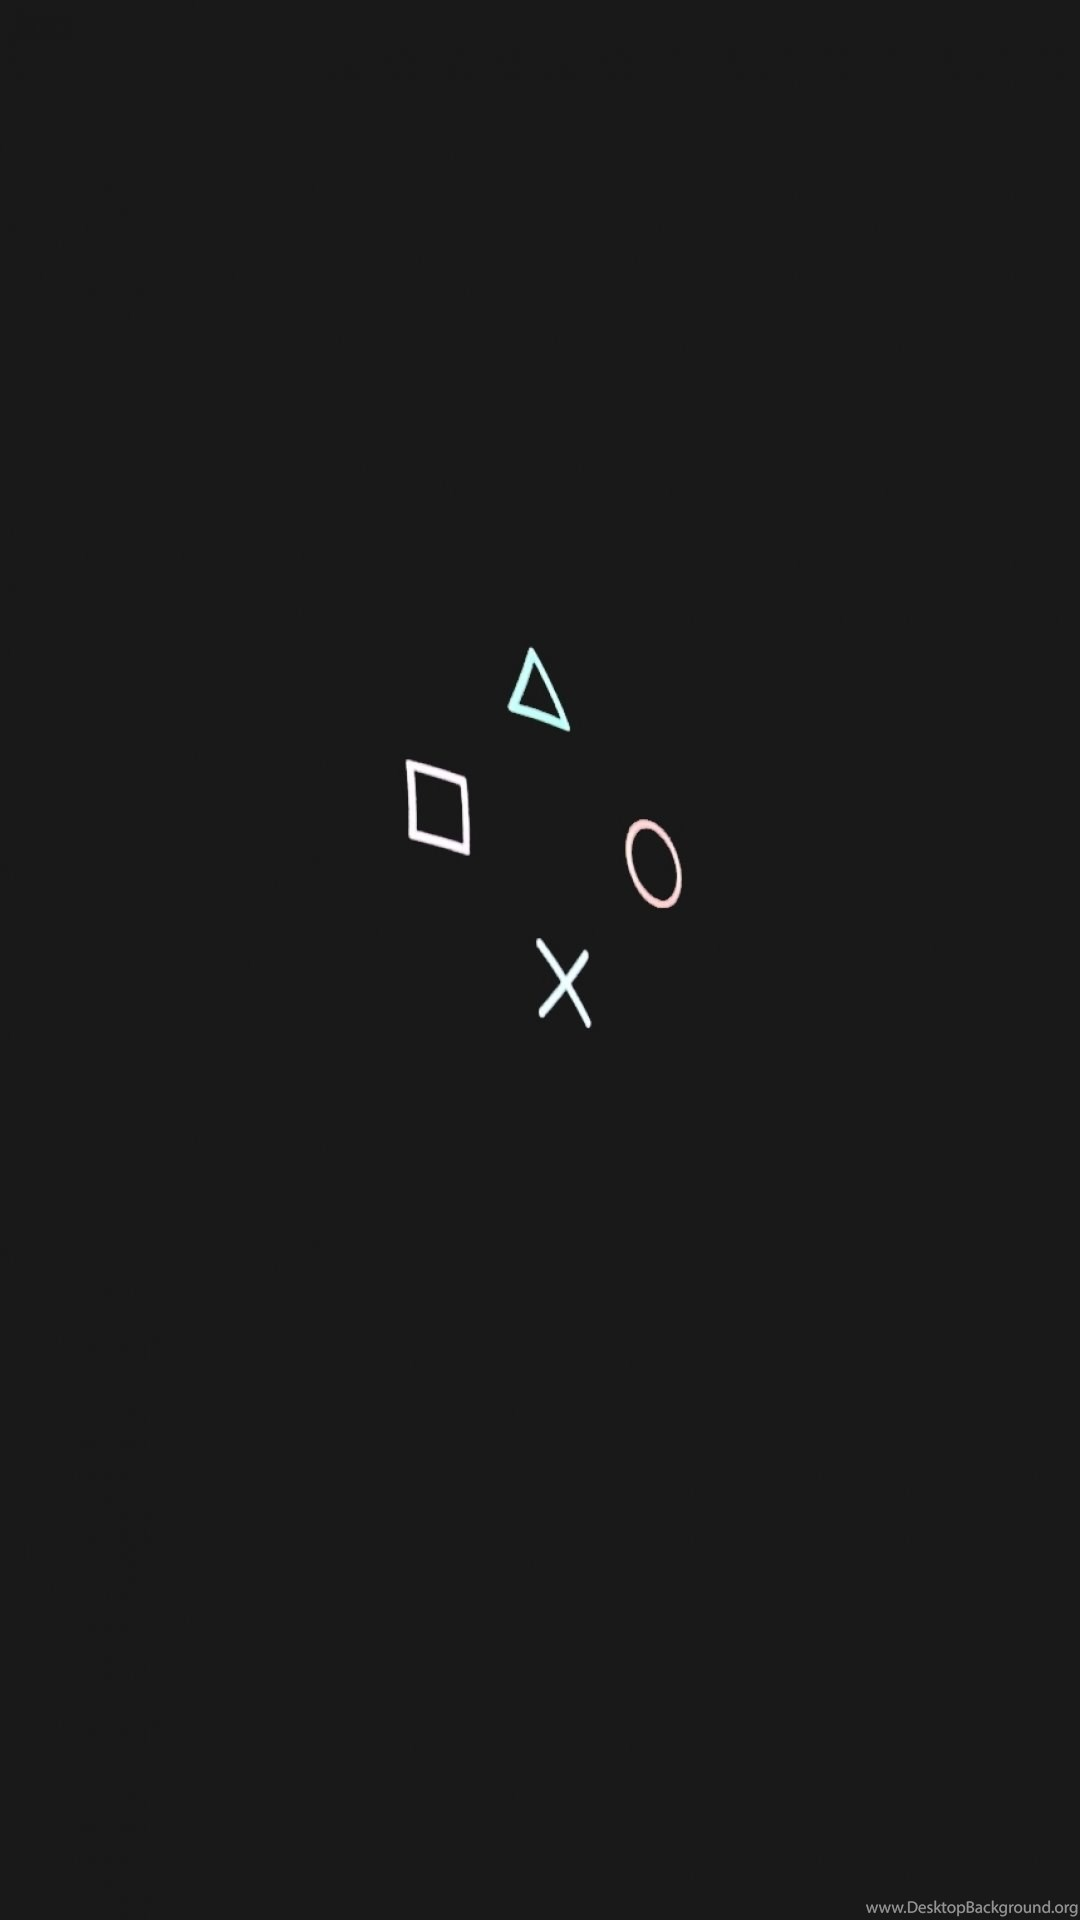 Iphone 6 Video Game Playstation Wallpapers Id 176463 Desktop Background